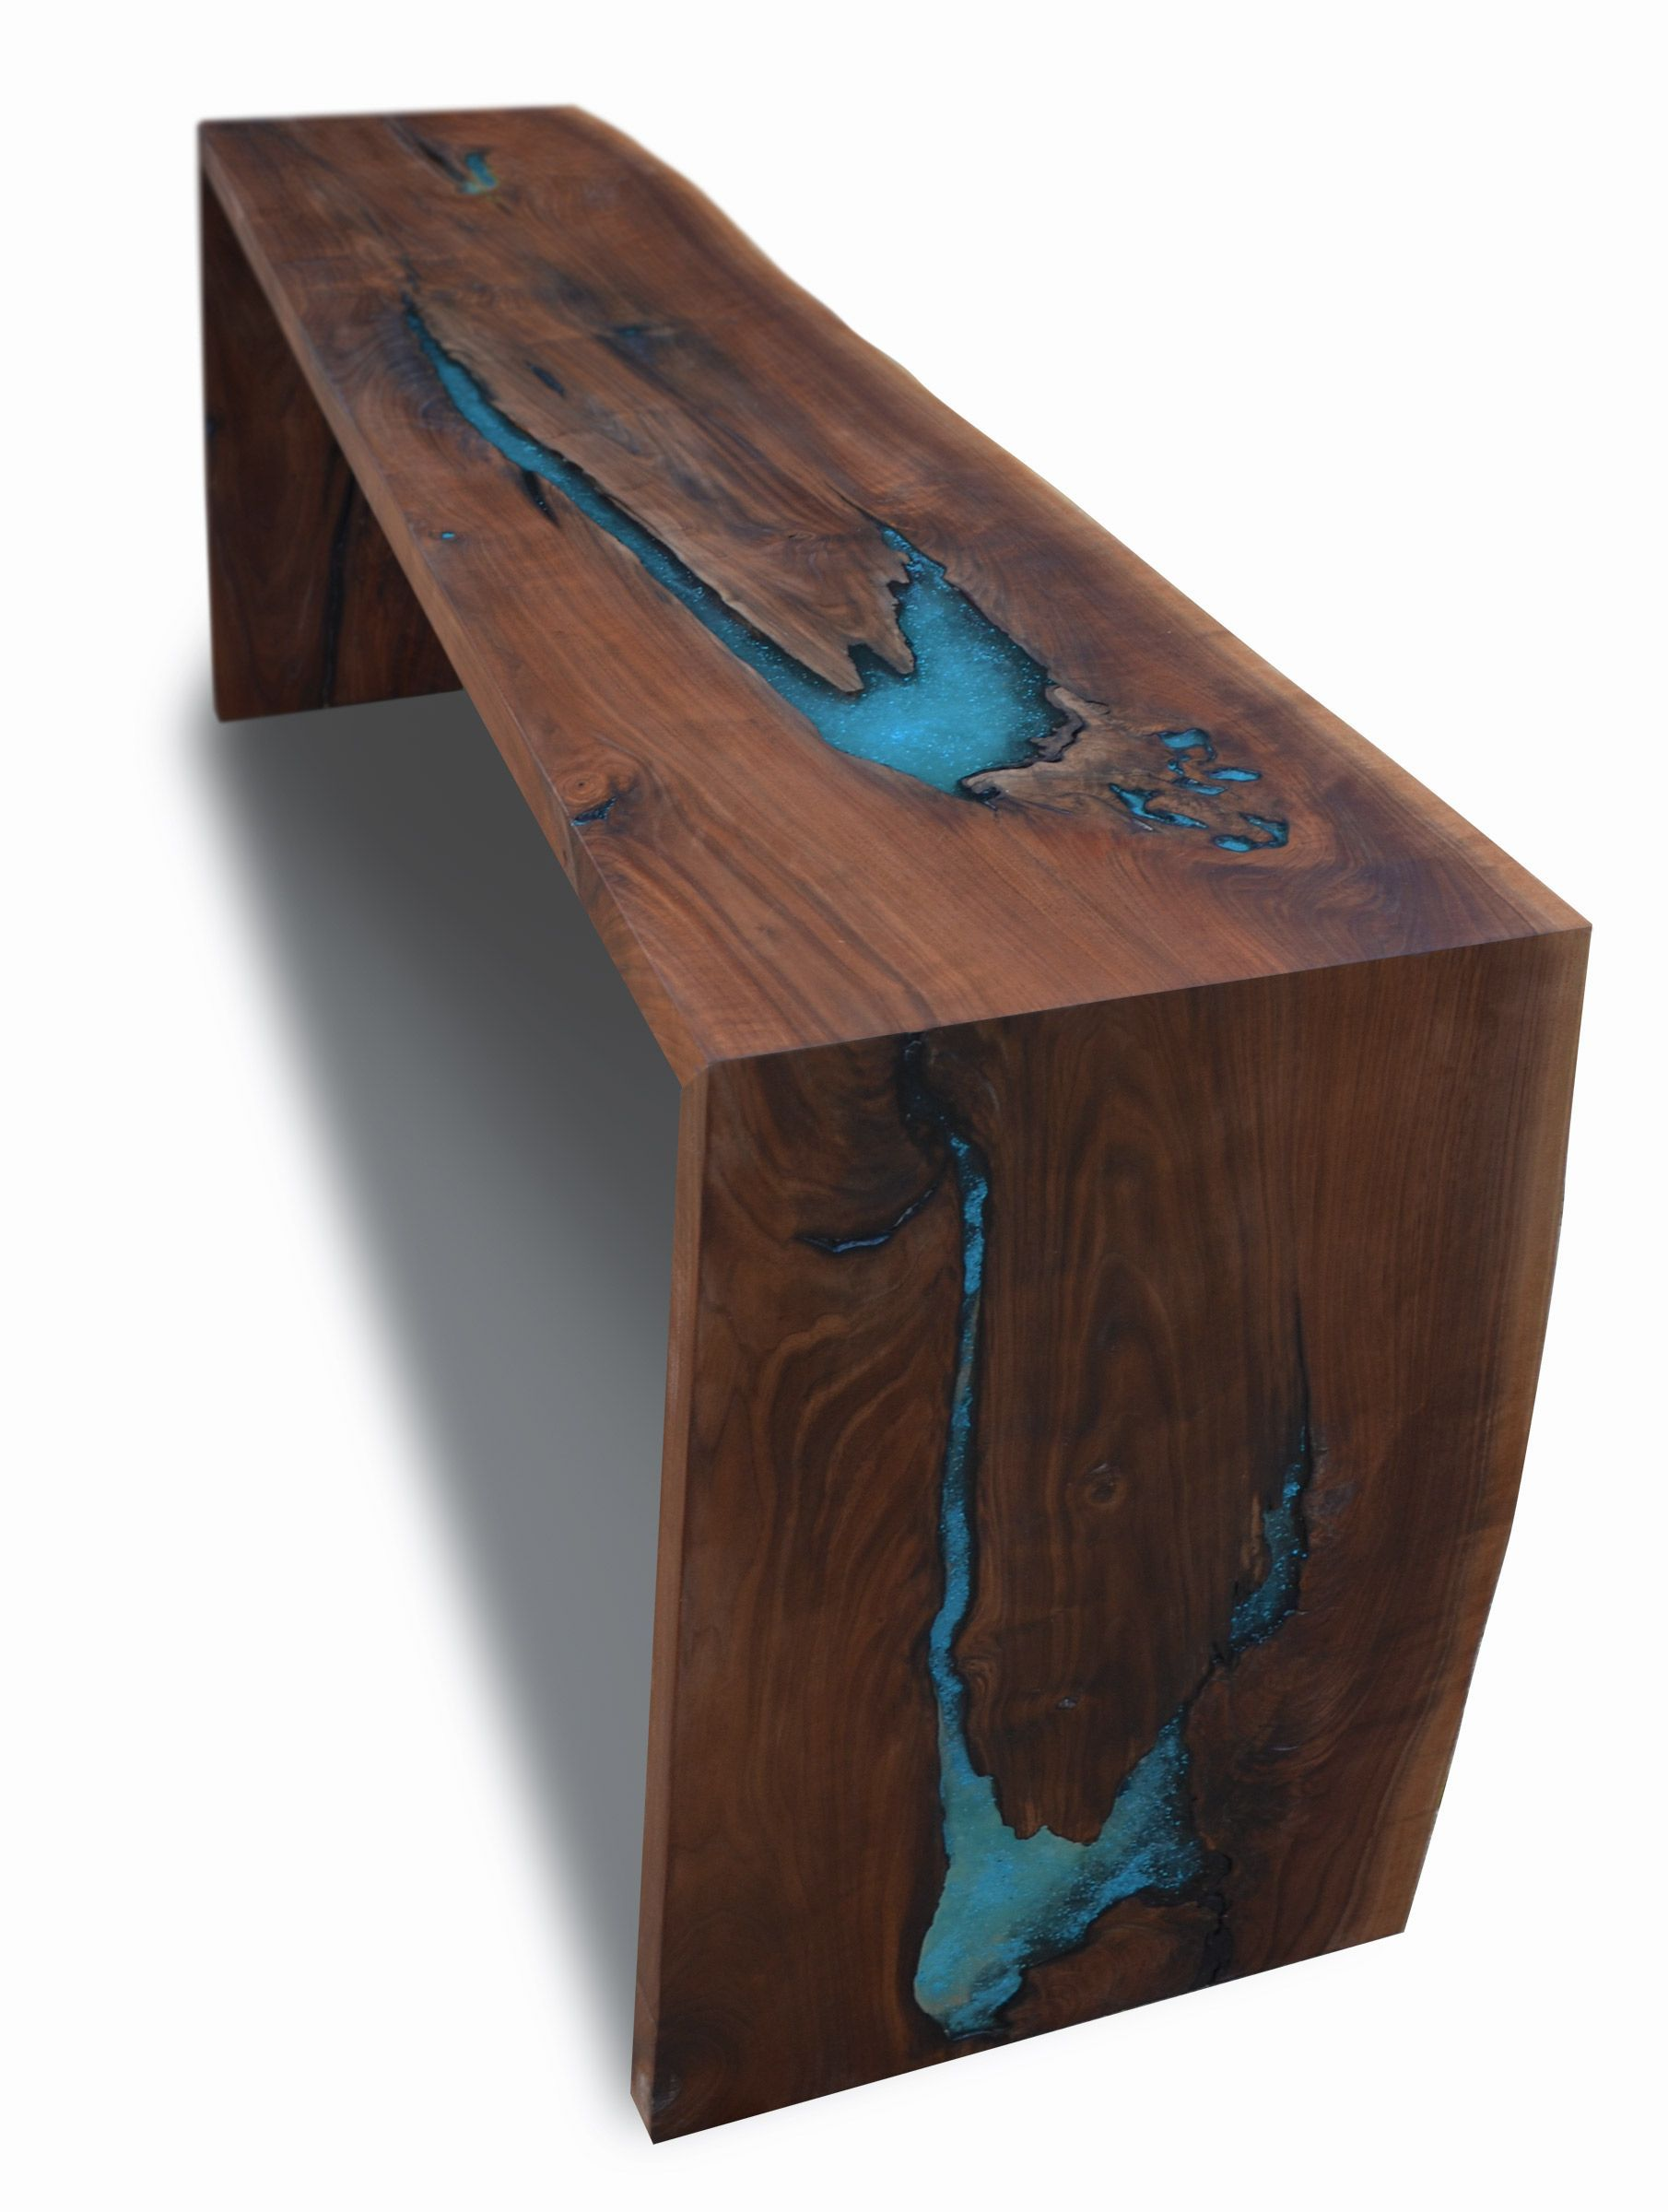 Coffee table custom made live edge walnut epoxy resin turquoise inlay dining console bh 1r 2 Console coffee table